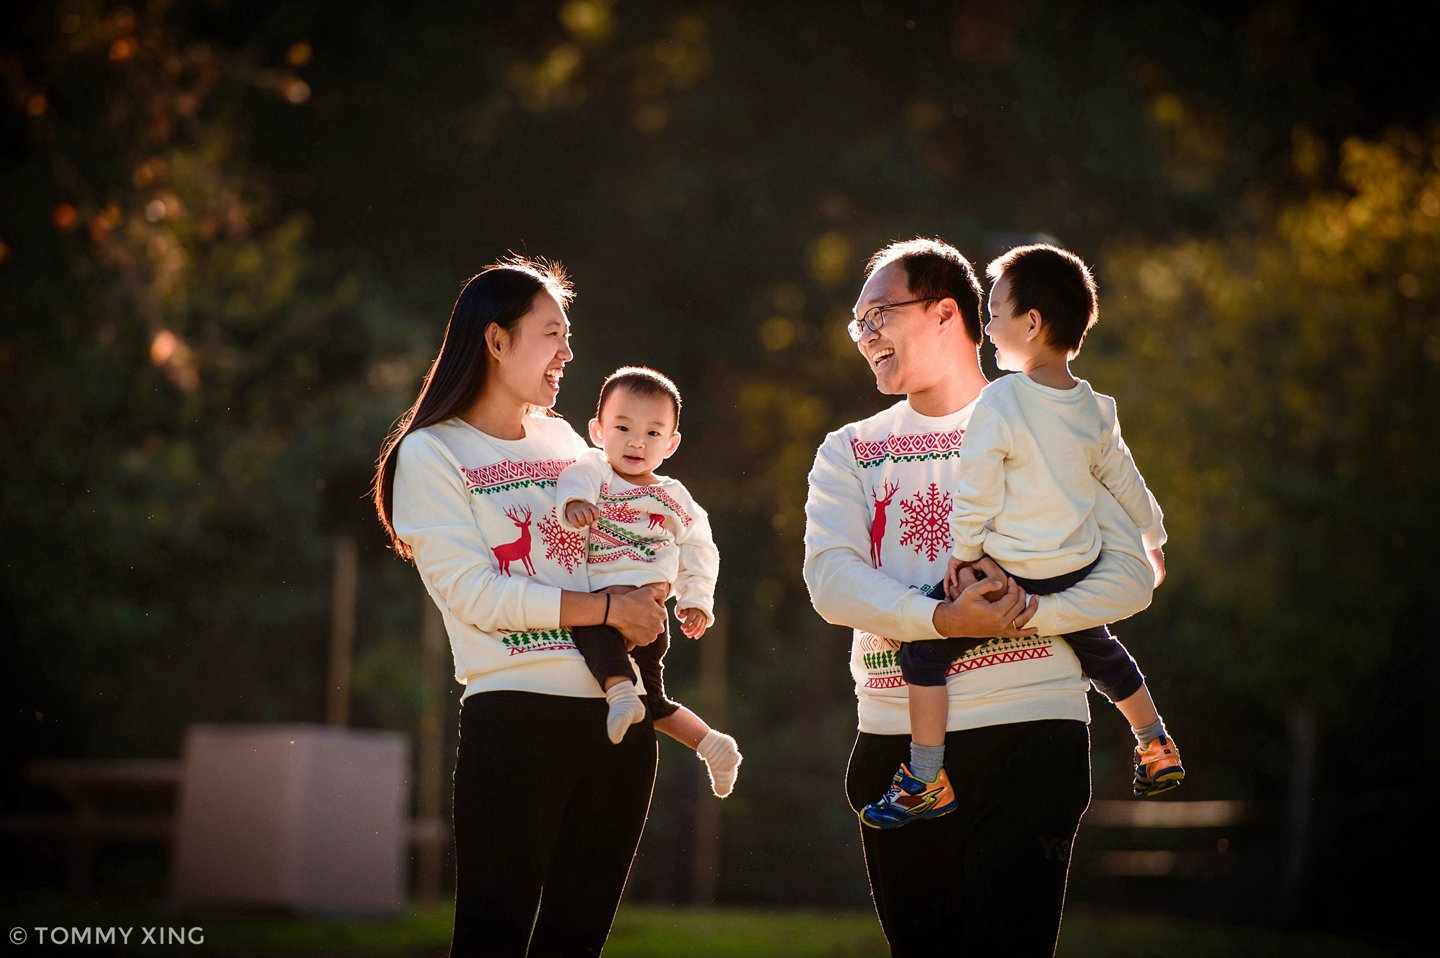 Los Angeles Family Portrait Photographer 洛杉矶家庭摄影师 Tommy Xing  08.jpg